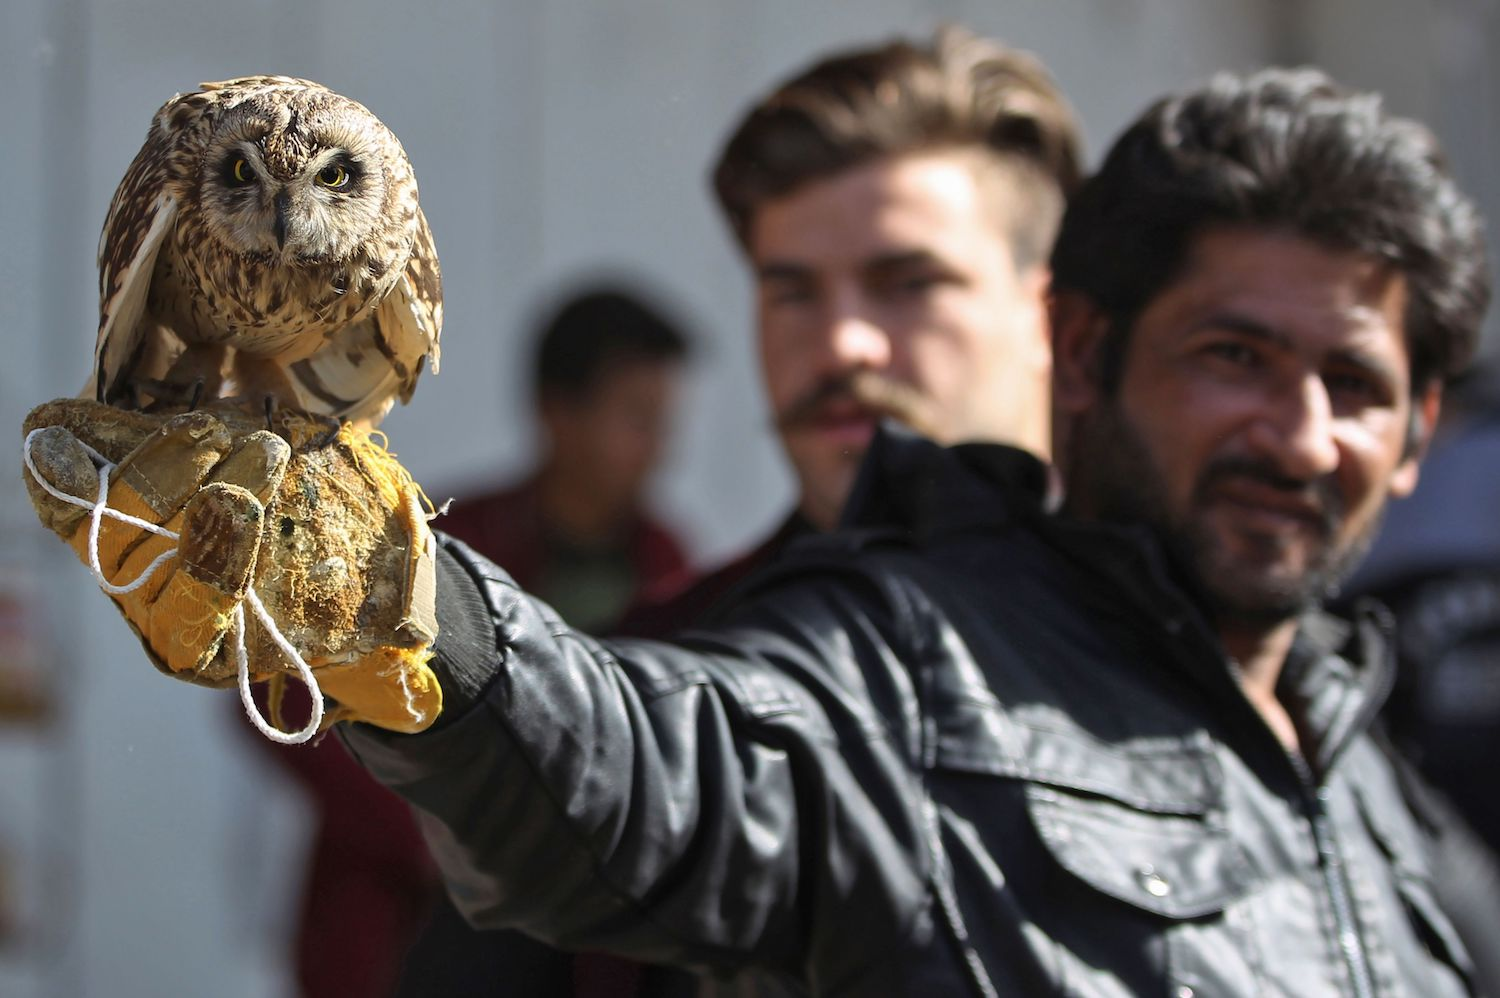 An Iraqi man holds up an owl at the Gazel animal market in Baghdad on Jan. 26. / AFP PHOTO / AHMAD AL-RUBAYE        (Photo credit should read AHMAD AL-RUBAYE/AFP/Getty Images)